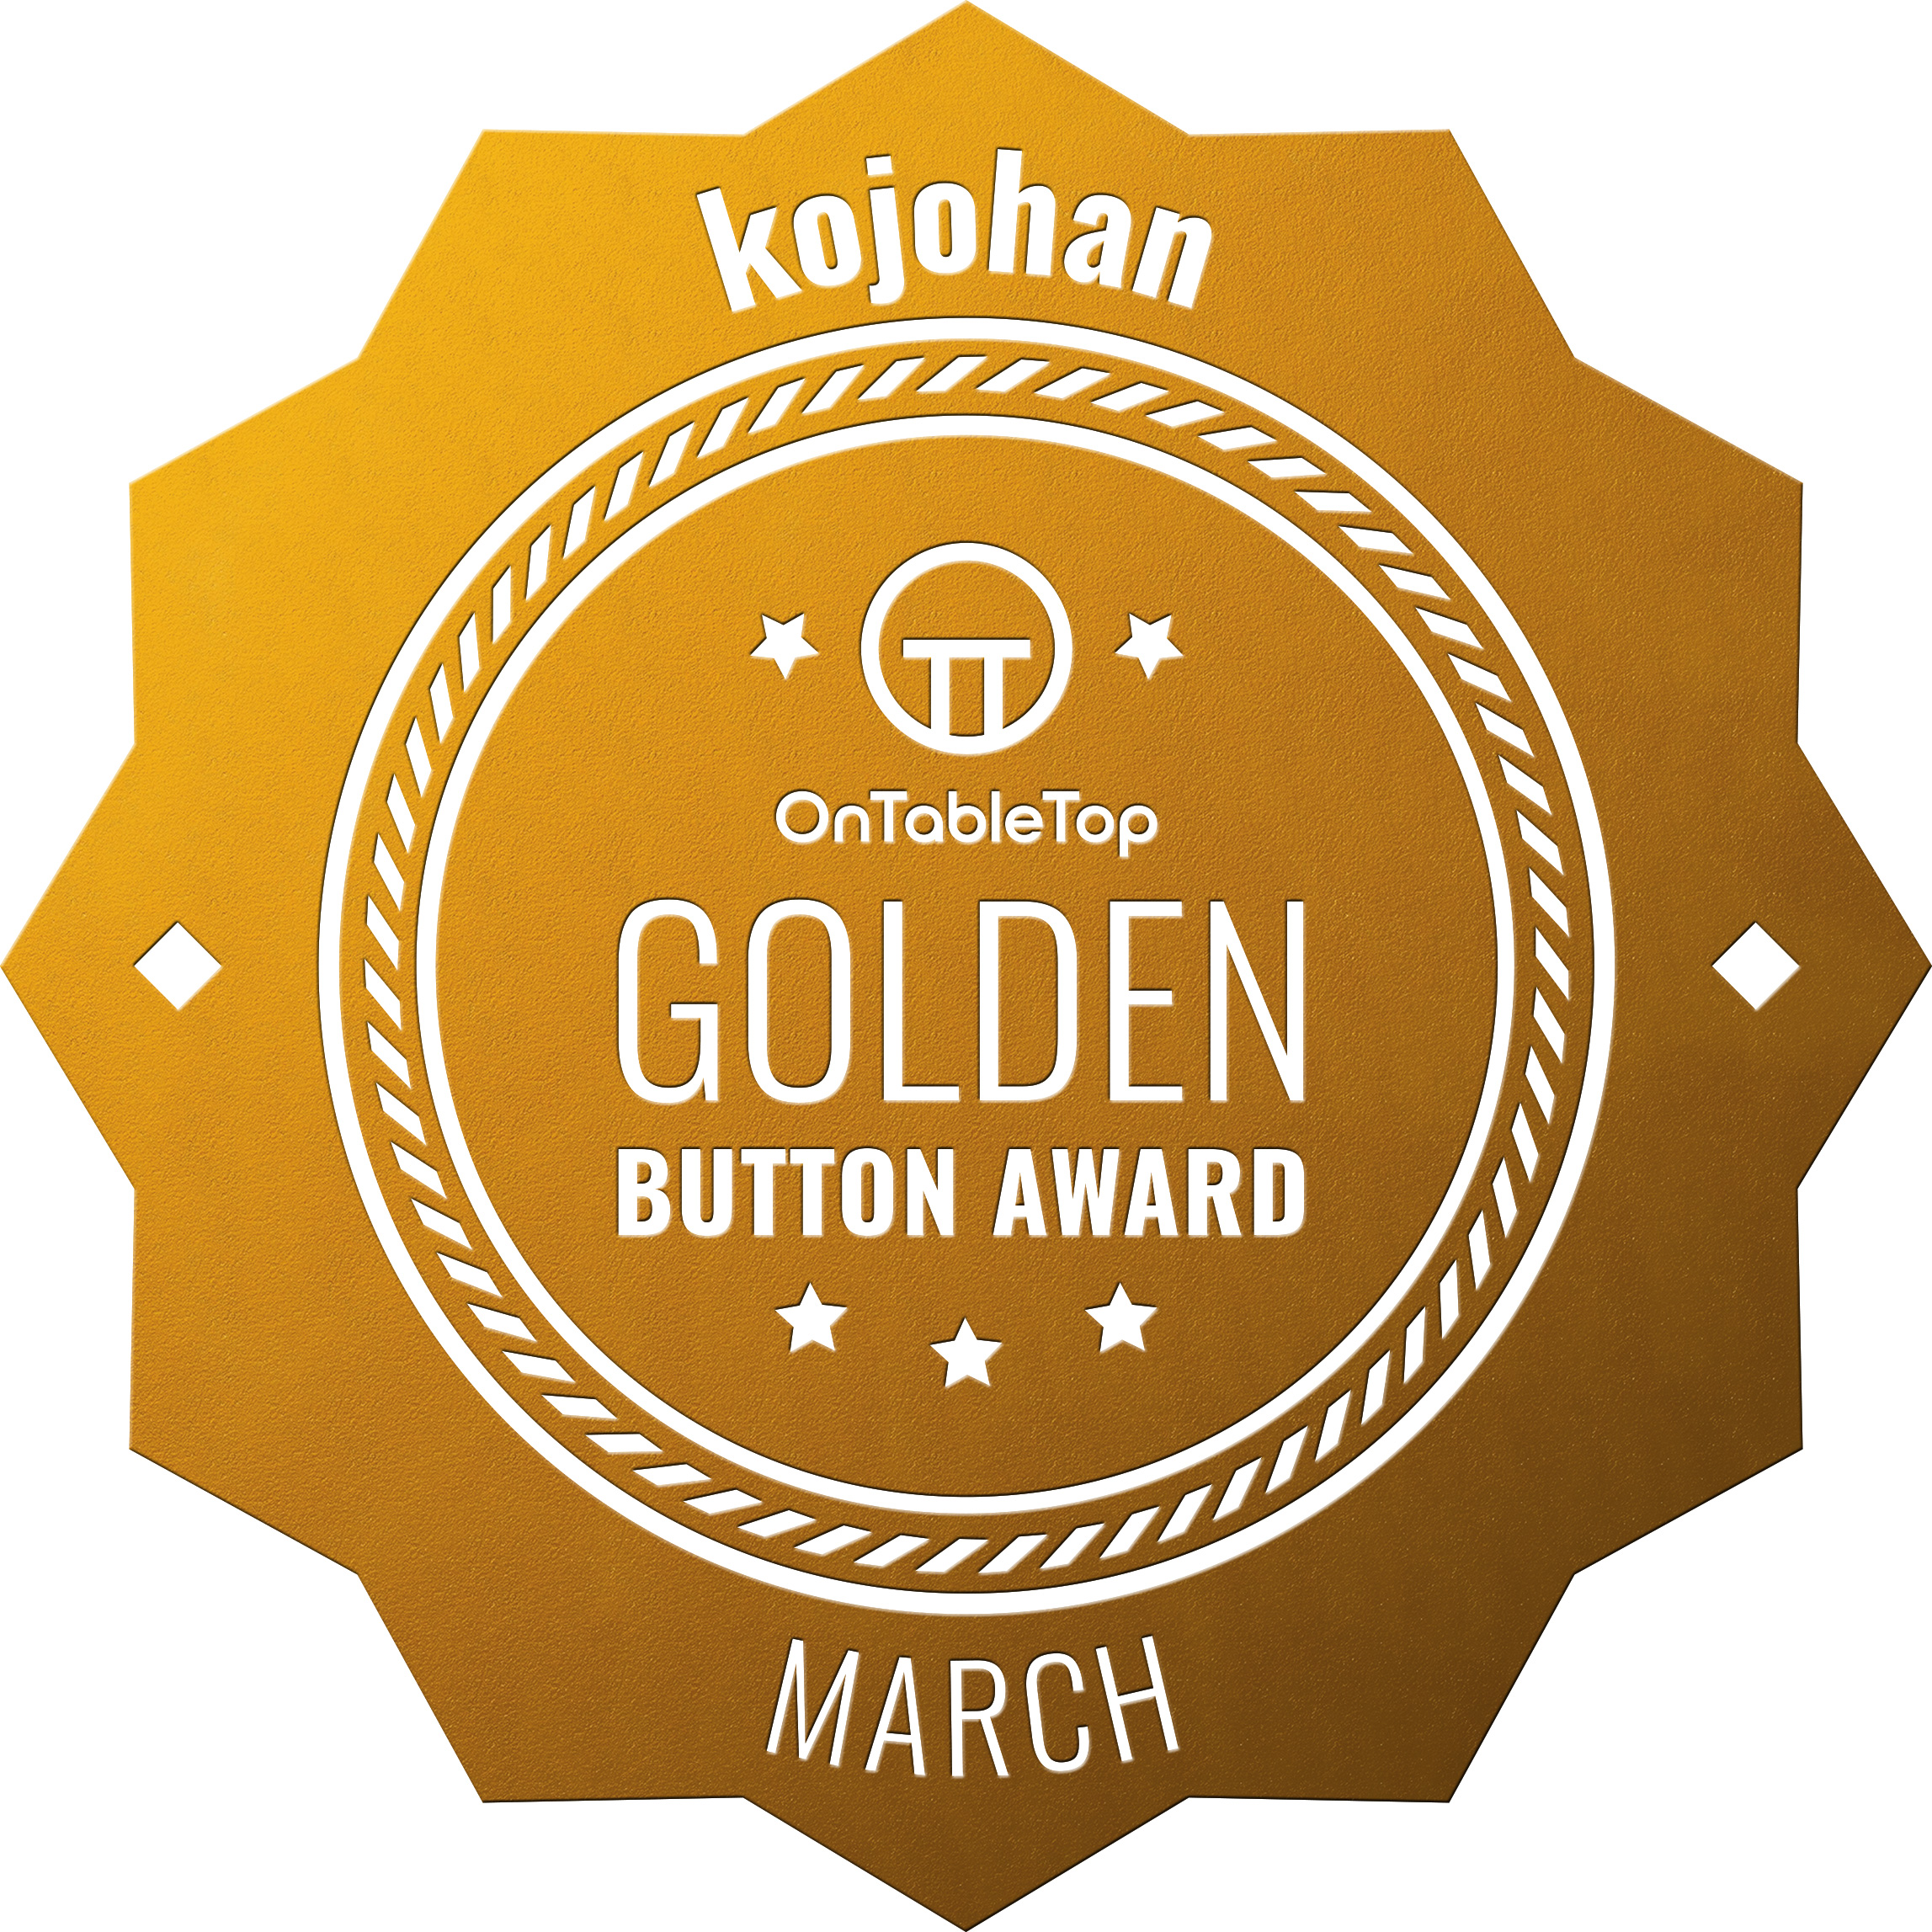 kojohan-Golden-Button-March-2021